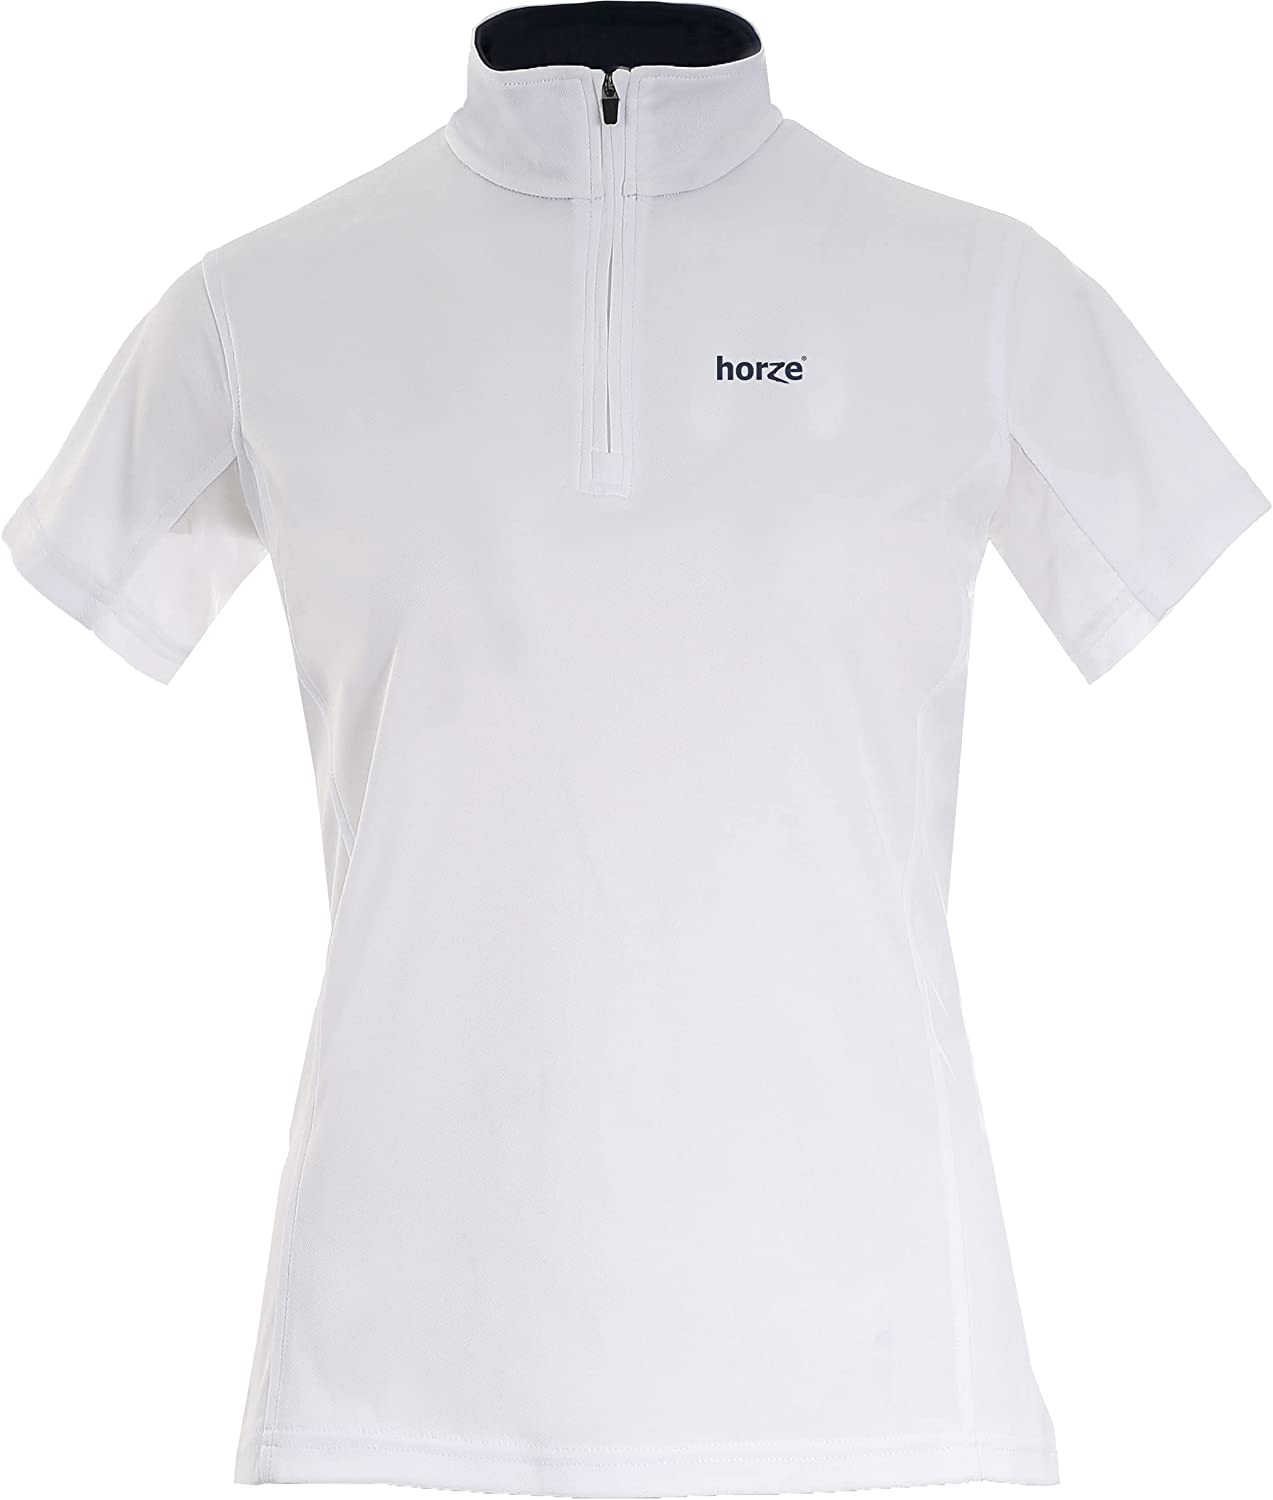 HORZE Trista Women's Short-Sleeved New sales Functional US Shirt White Department store 1